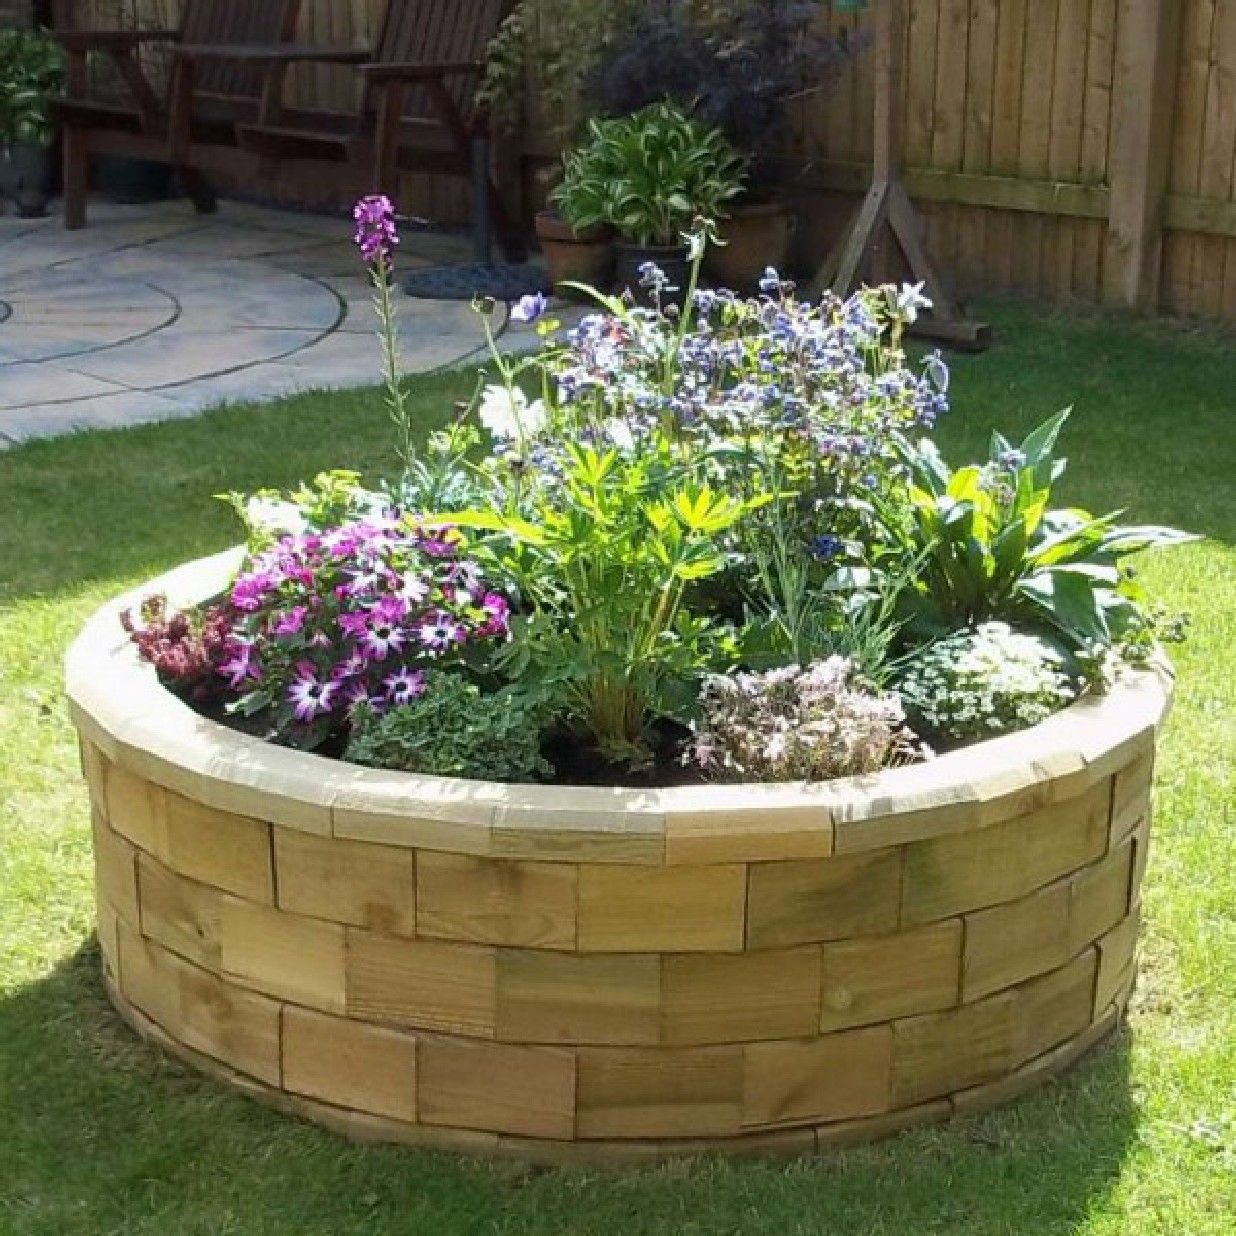 Epic 32 Amazing Beautiful Round Raised Garden Bed Ideas That You Can Make In A Weekend Https Usdecorating Com 29 Raised Garden Garden Beds Raised Garden Beds